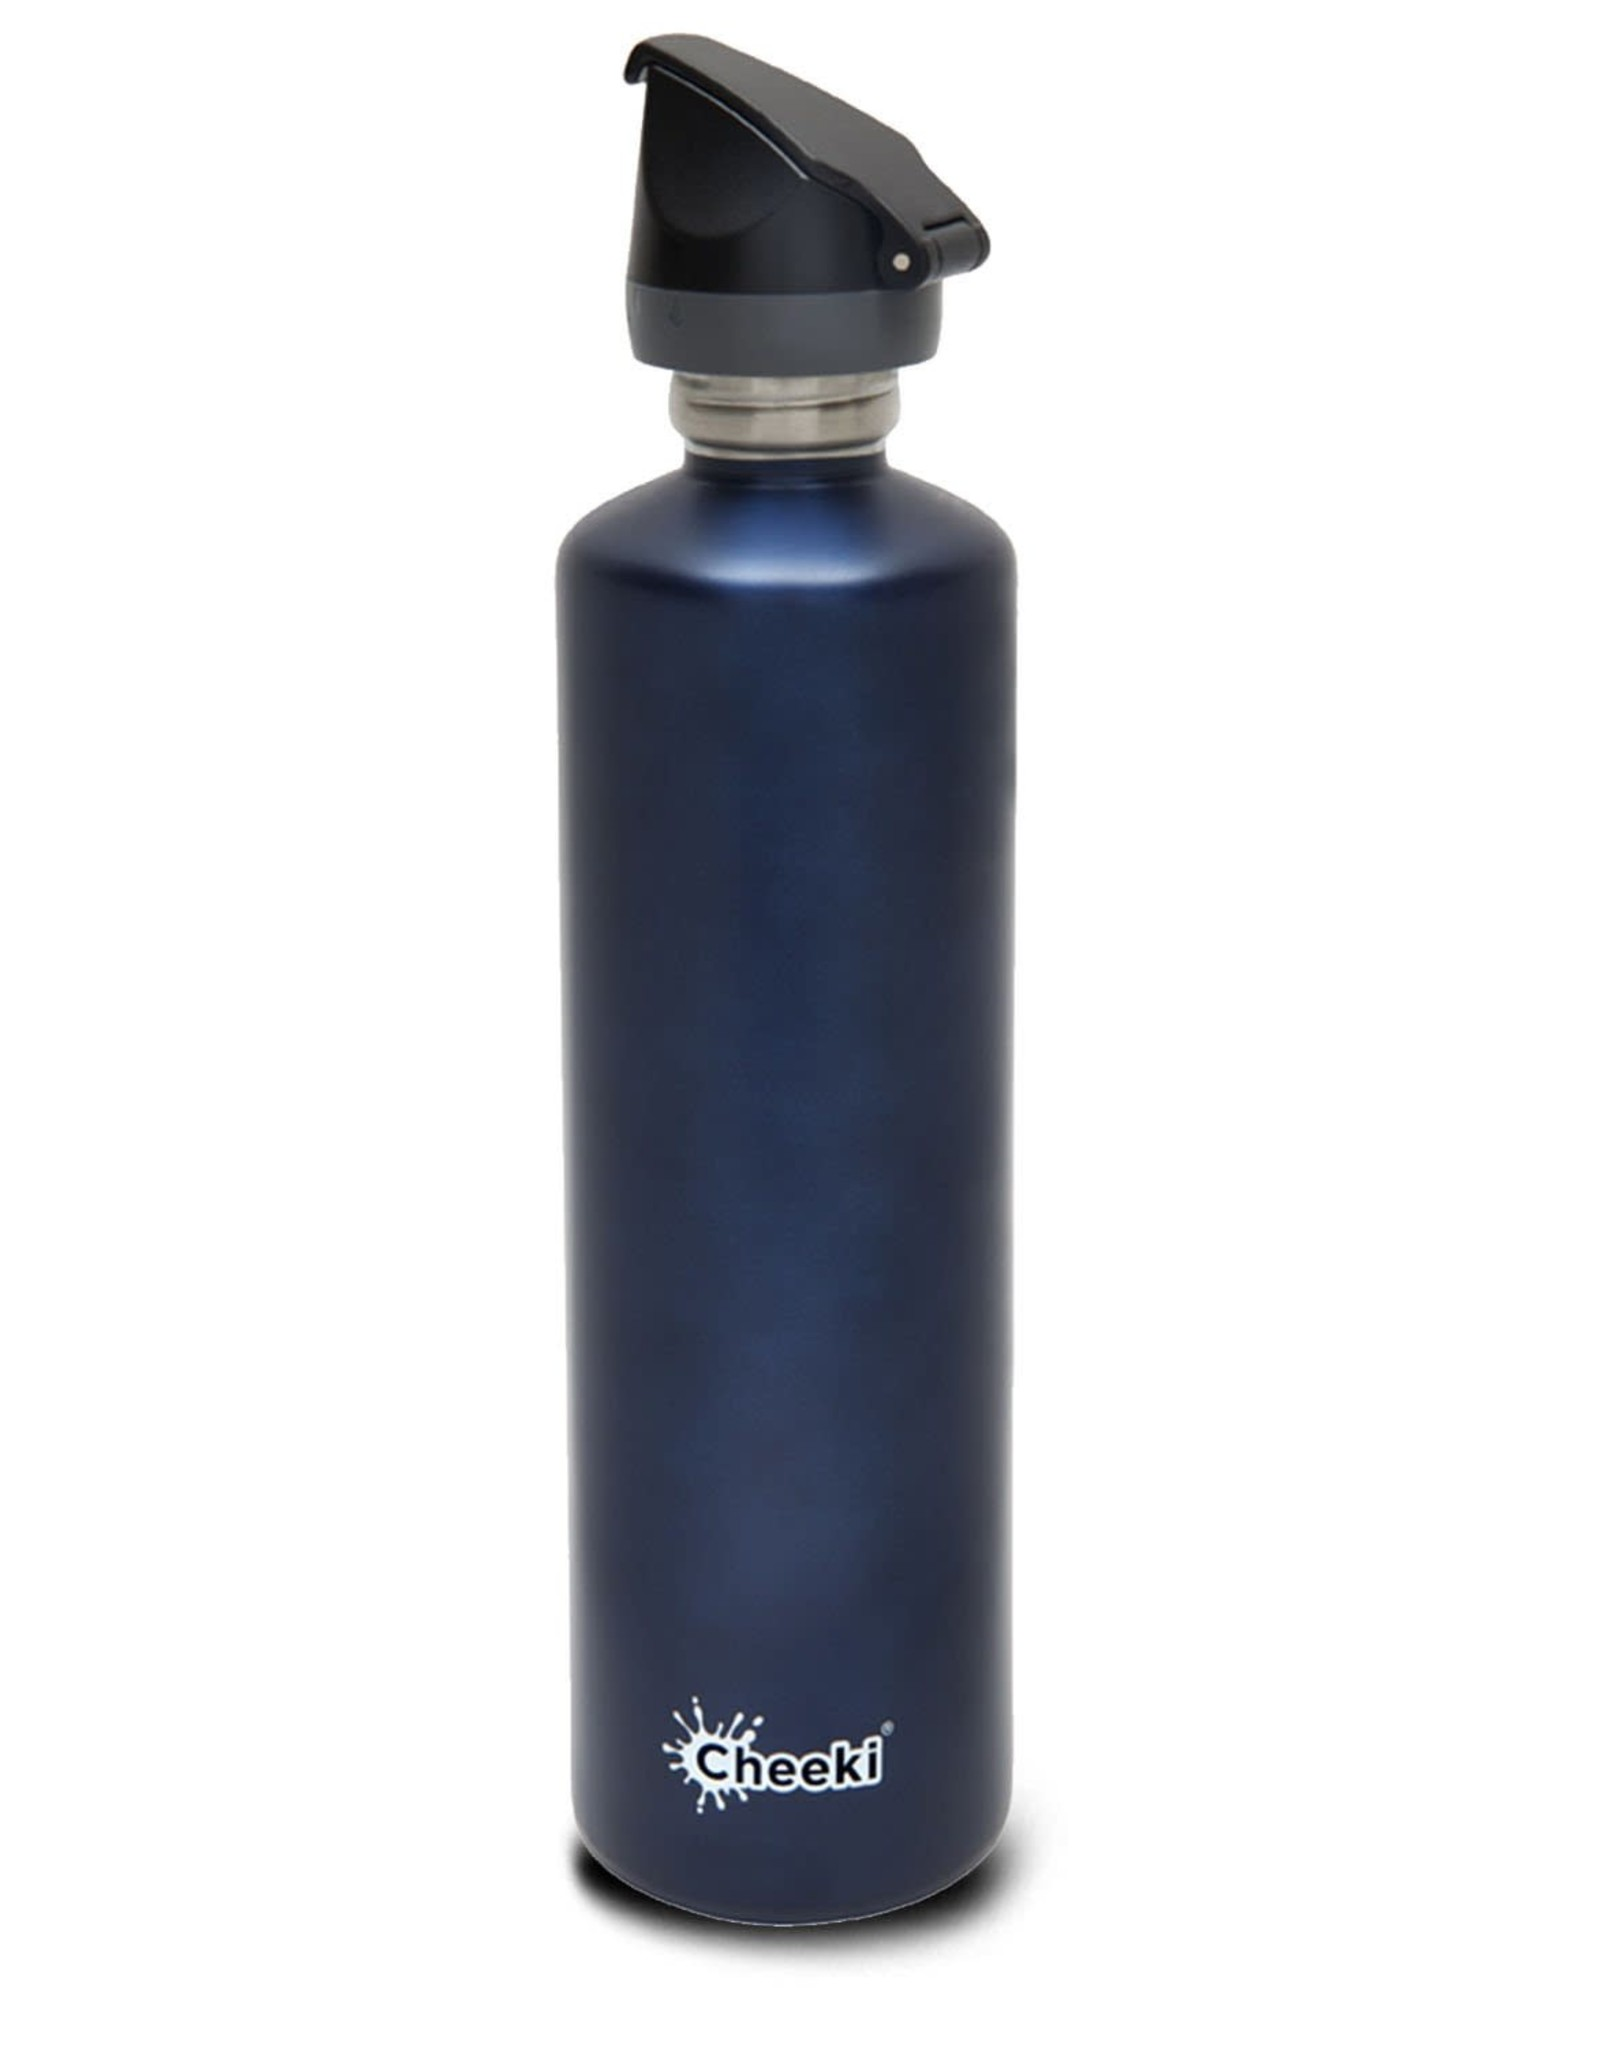 Cheeki Stainless Steel Bottle with Sports Lid 1L